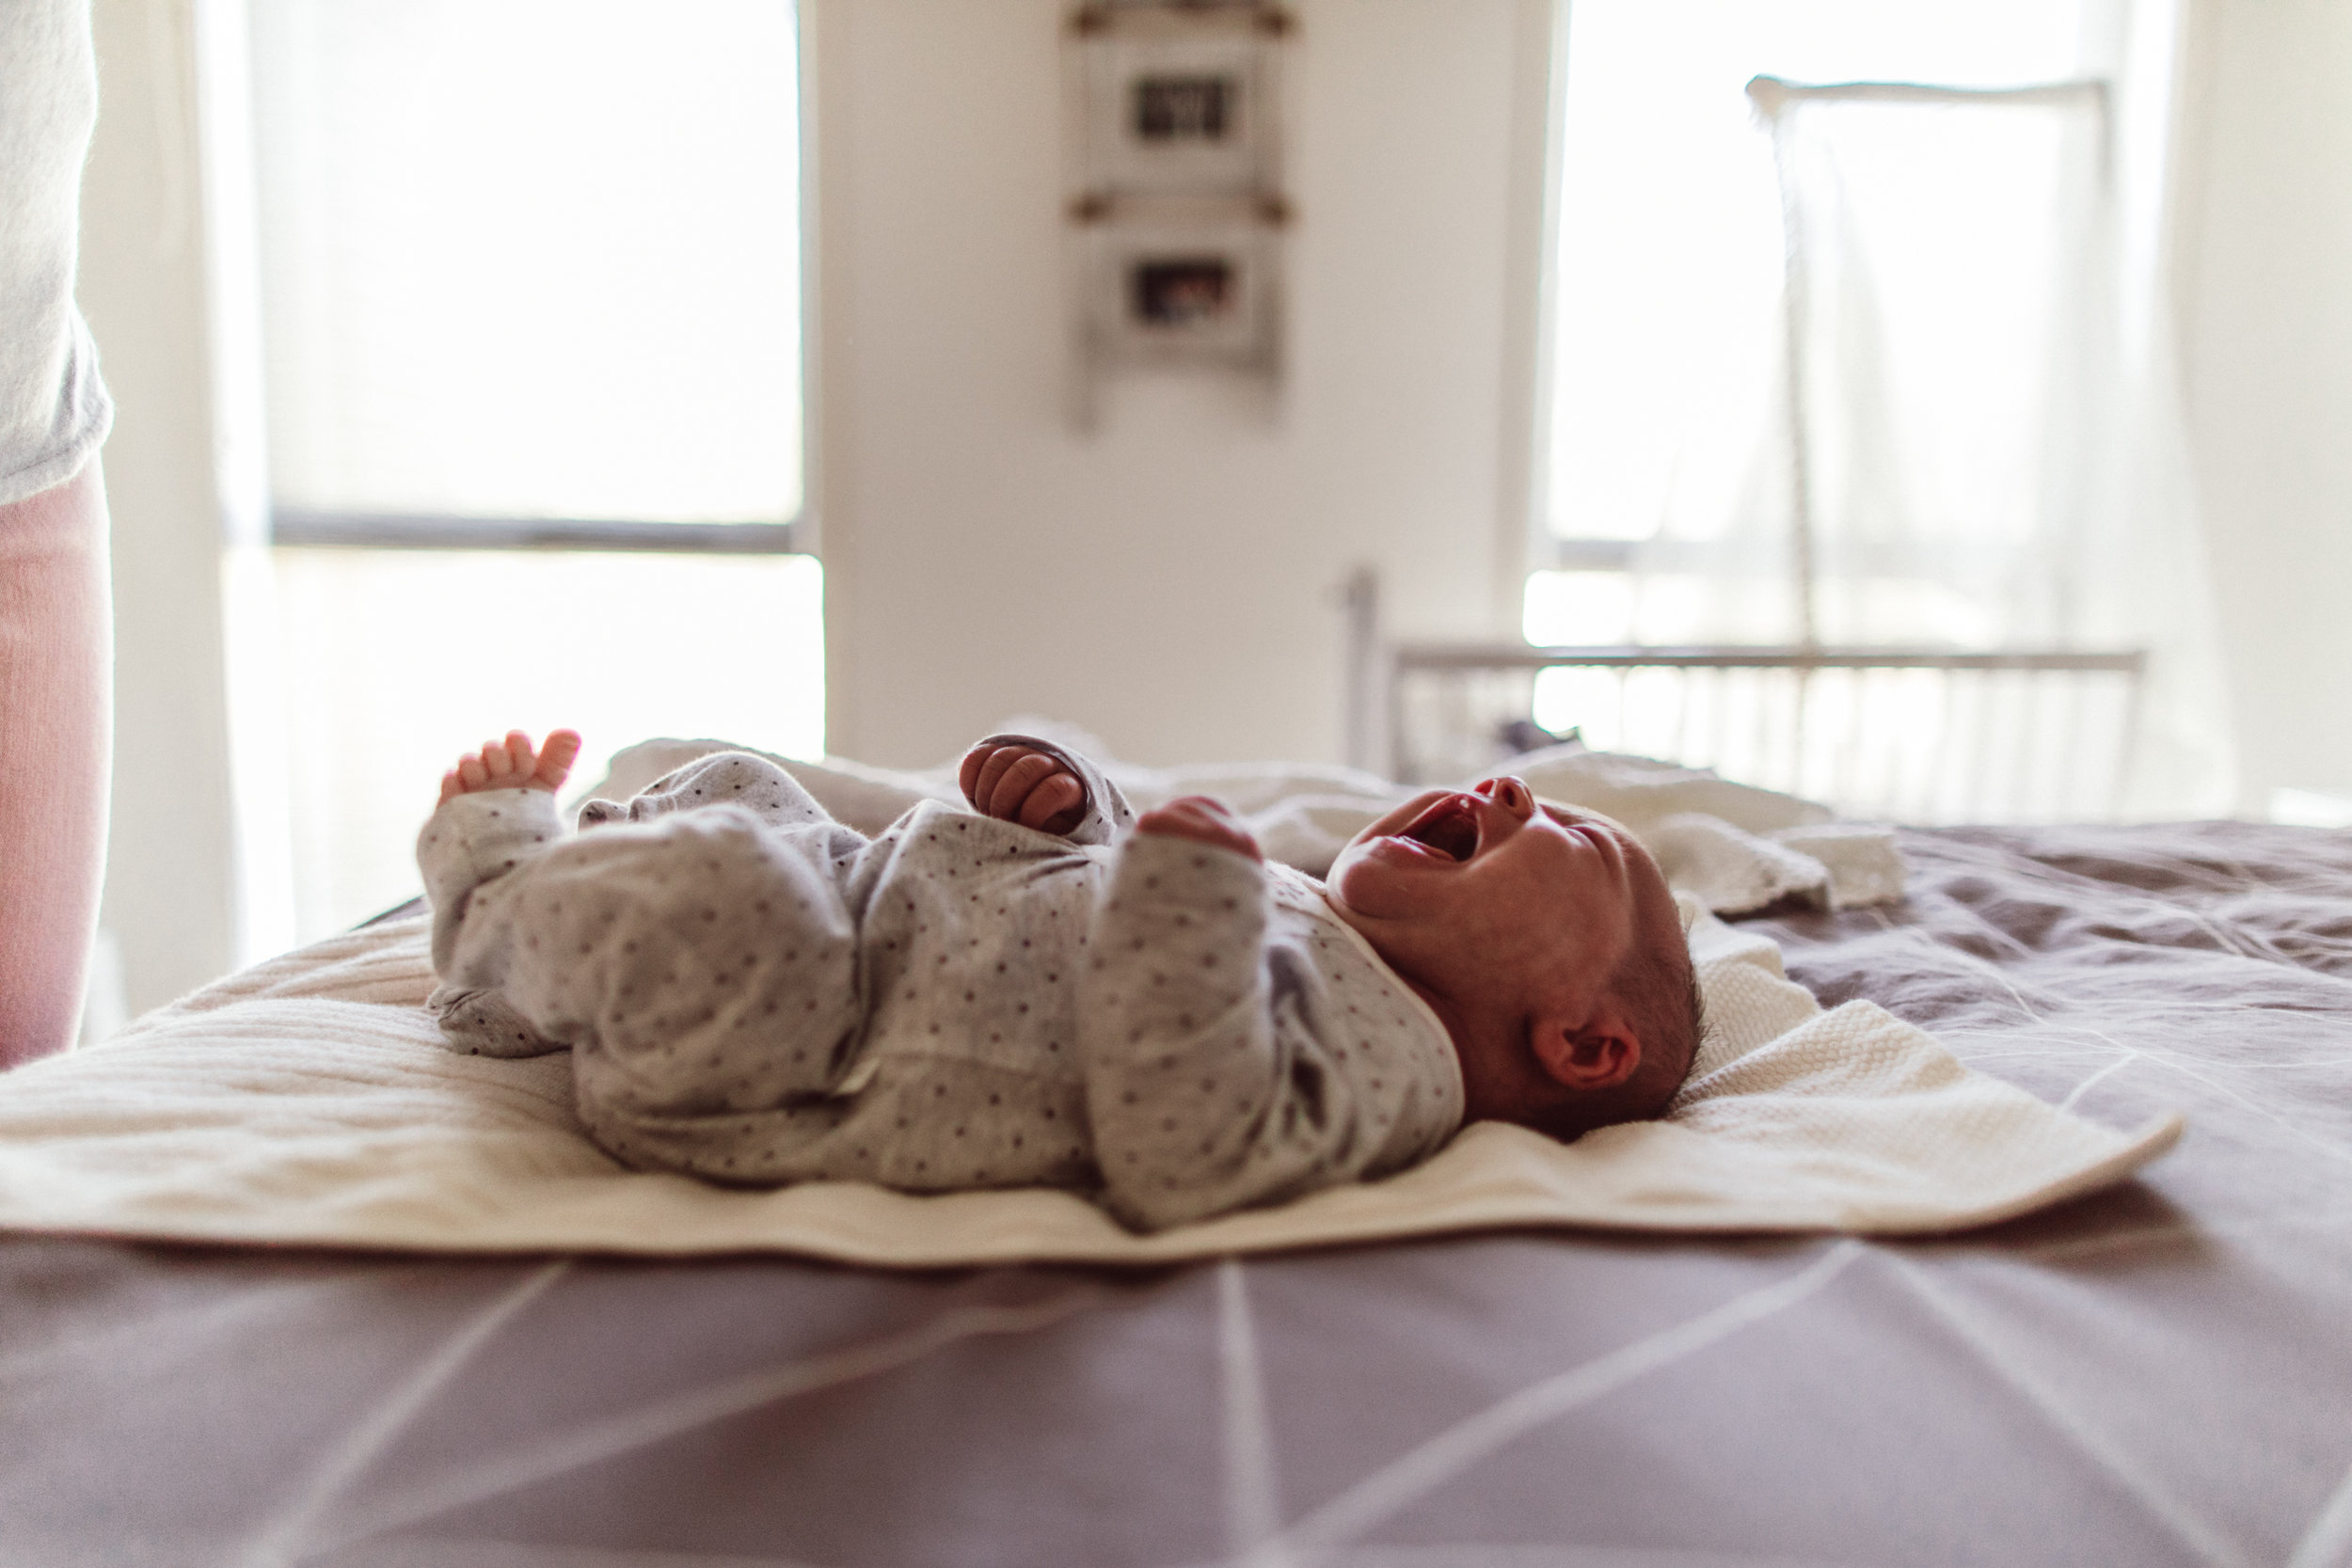 sydney birth photographer - newborn baby on bed